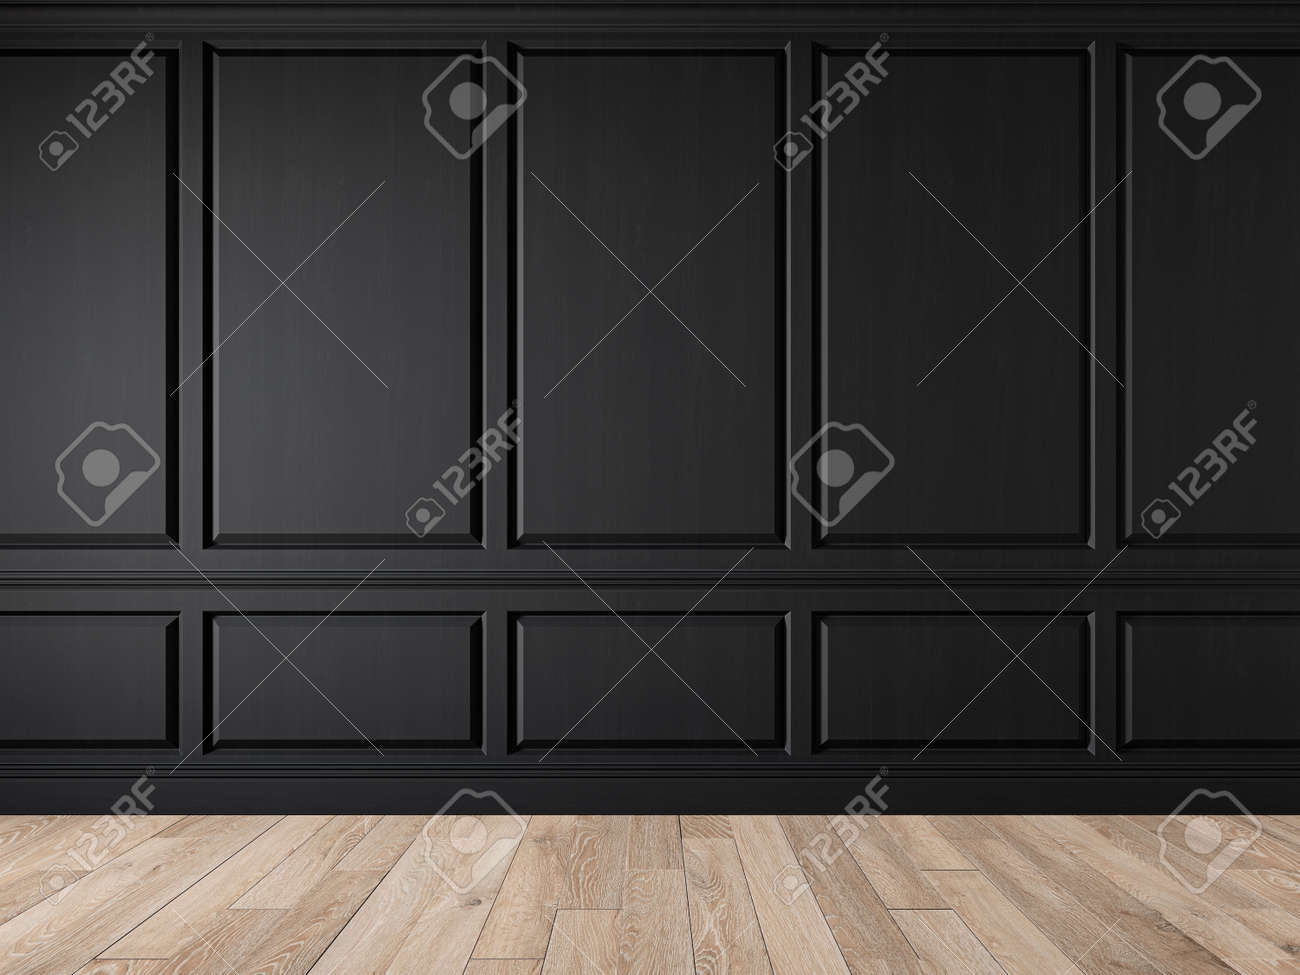 Modern classic black blank wall empty interior with wall panels, molding and wooden floor. 3d render illustration mock up. - 167176723